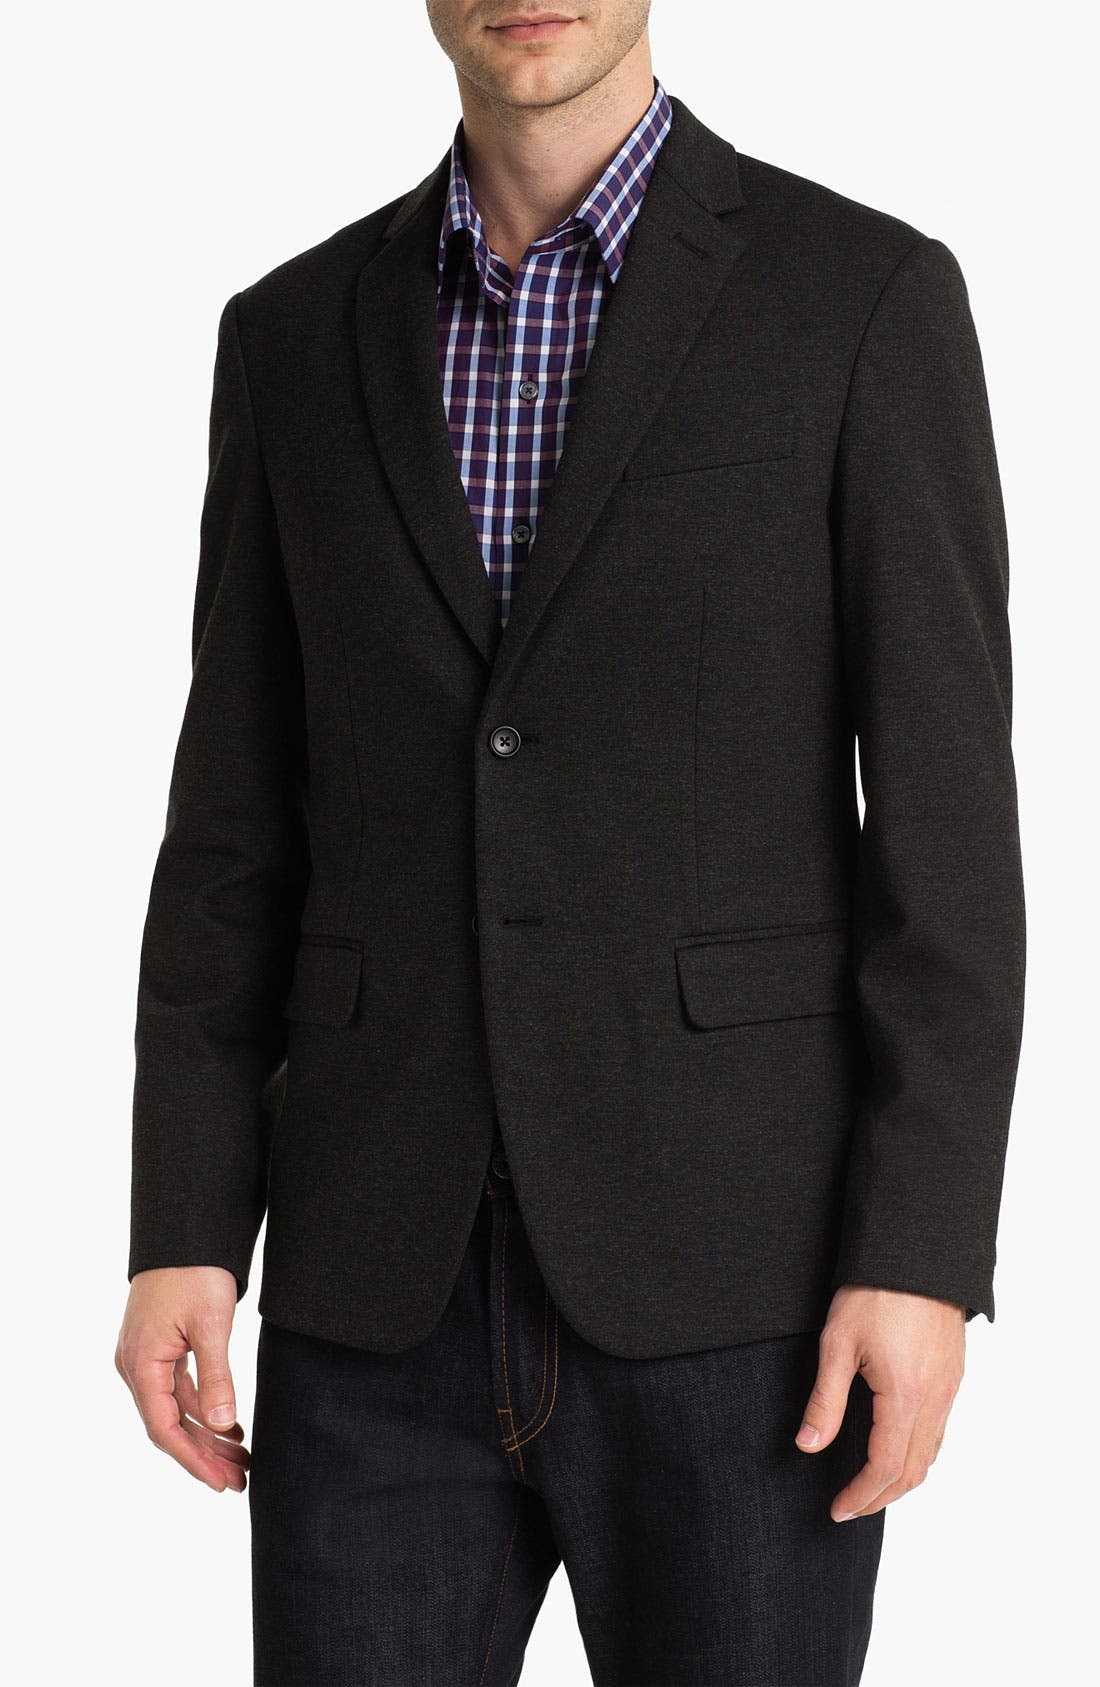 Main Image - Calibrate 'Endell' Knit Sportcoat